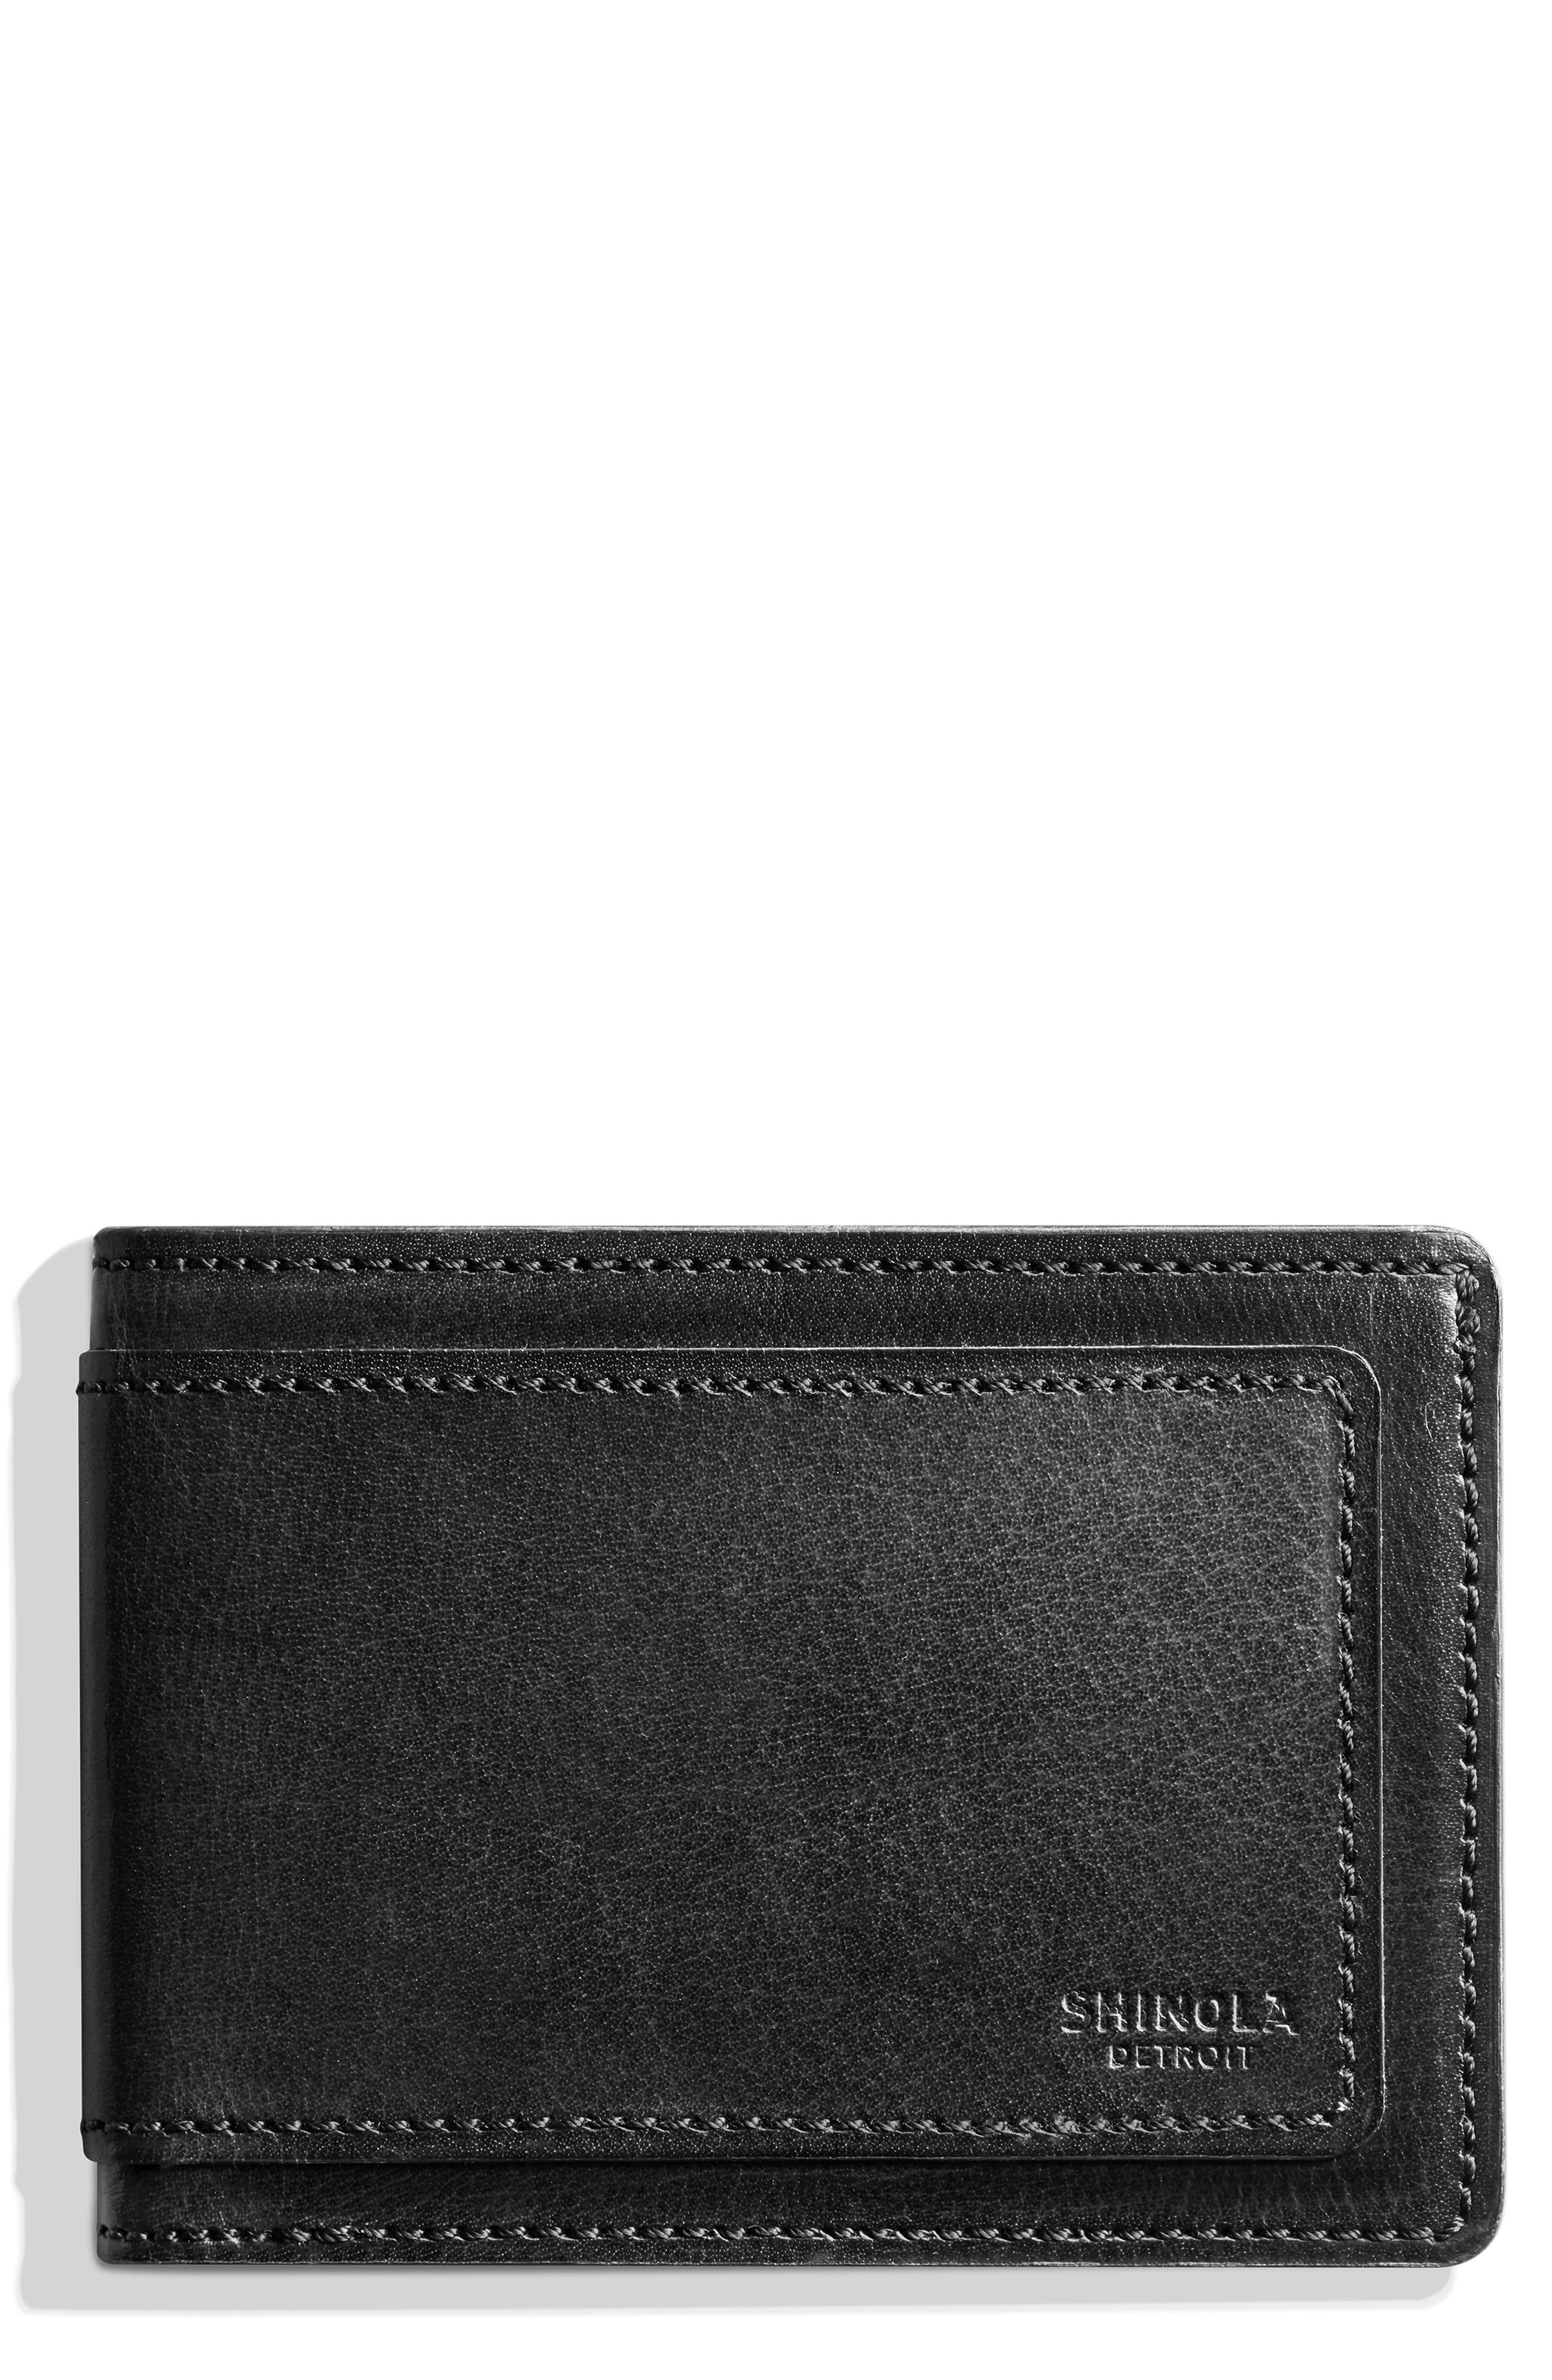 Outlaw Wallet,                         Main,                         color, BLACK